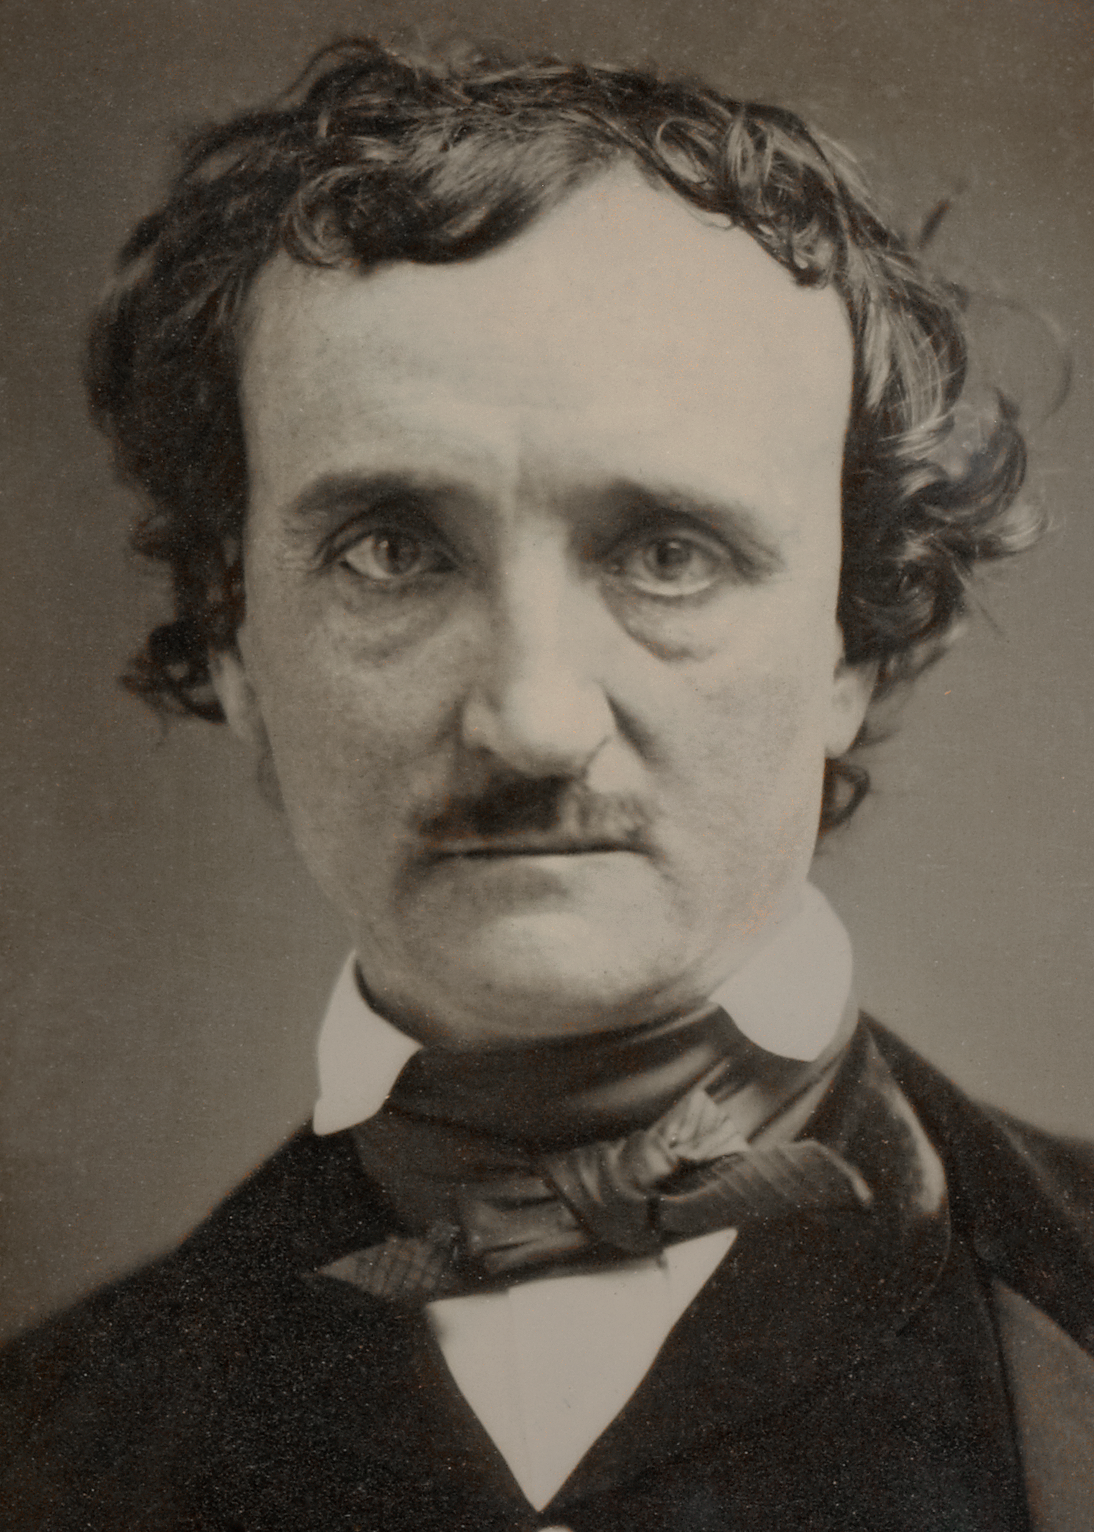 How to write like edgar allan poe